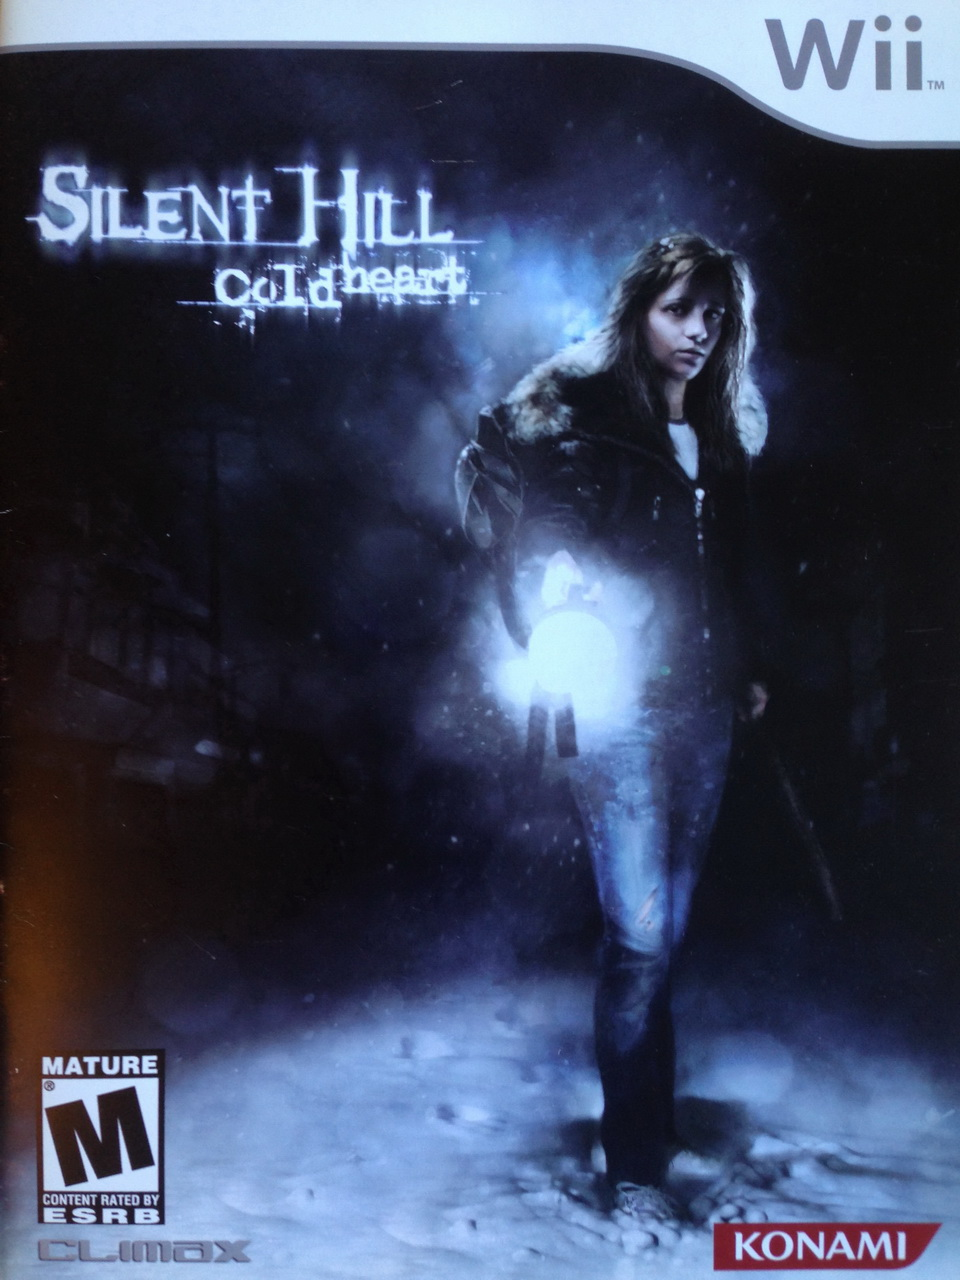 Cold Heart The Silent Hill Wii Game That Could Have Been